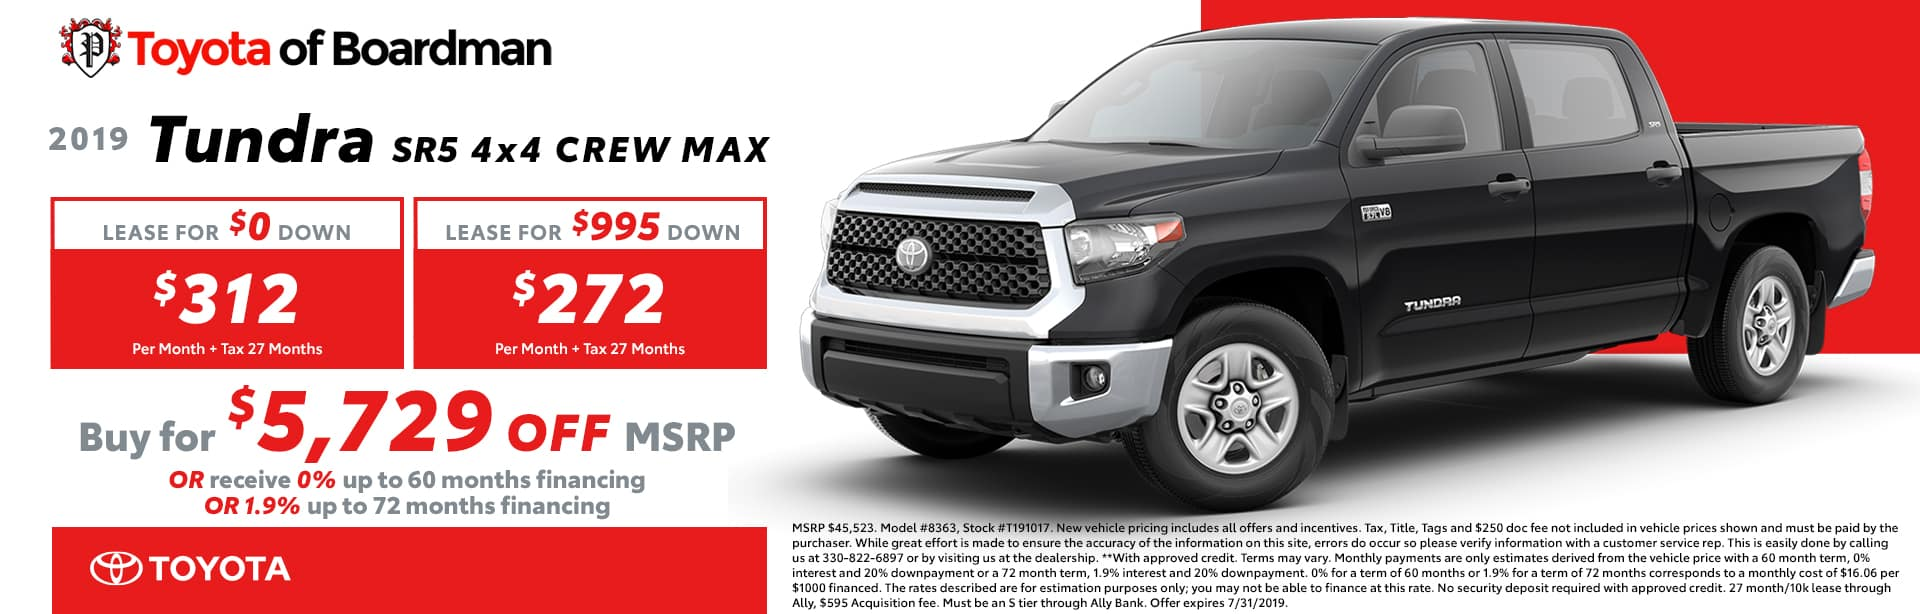 July special on the 2019 Toyota Tundra